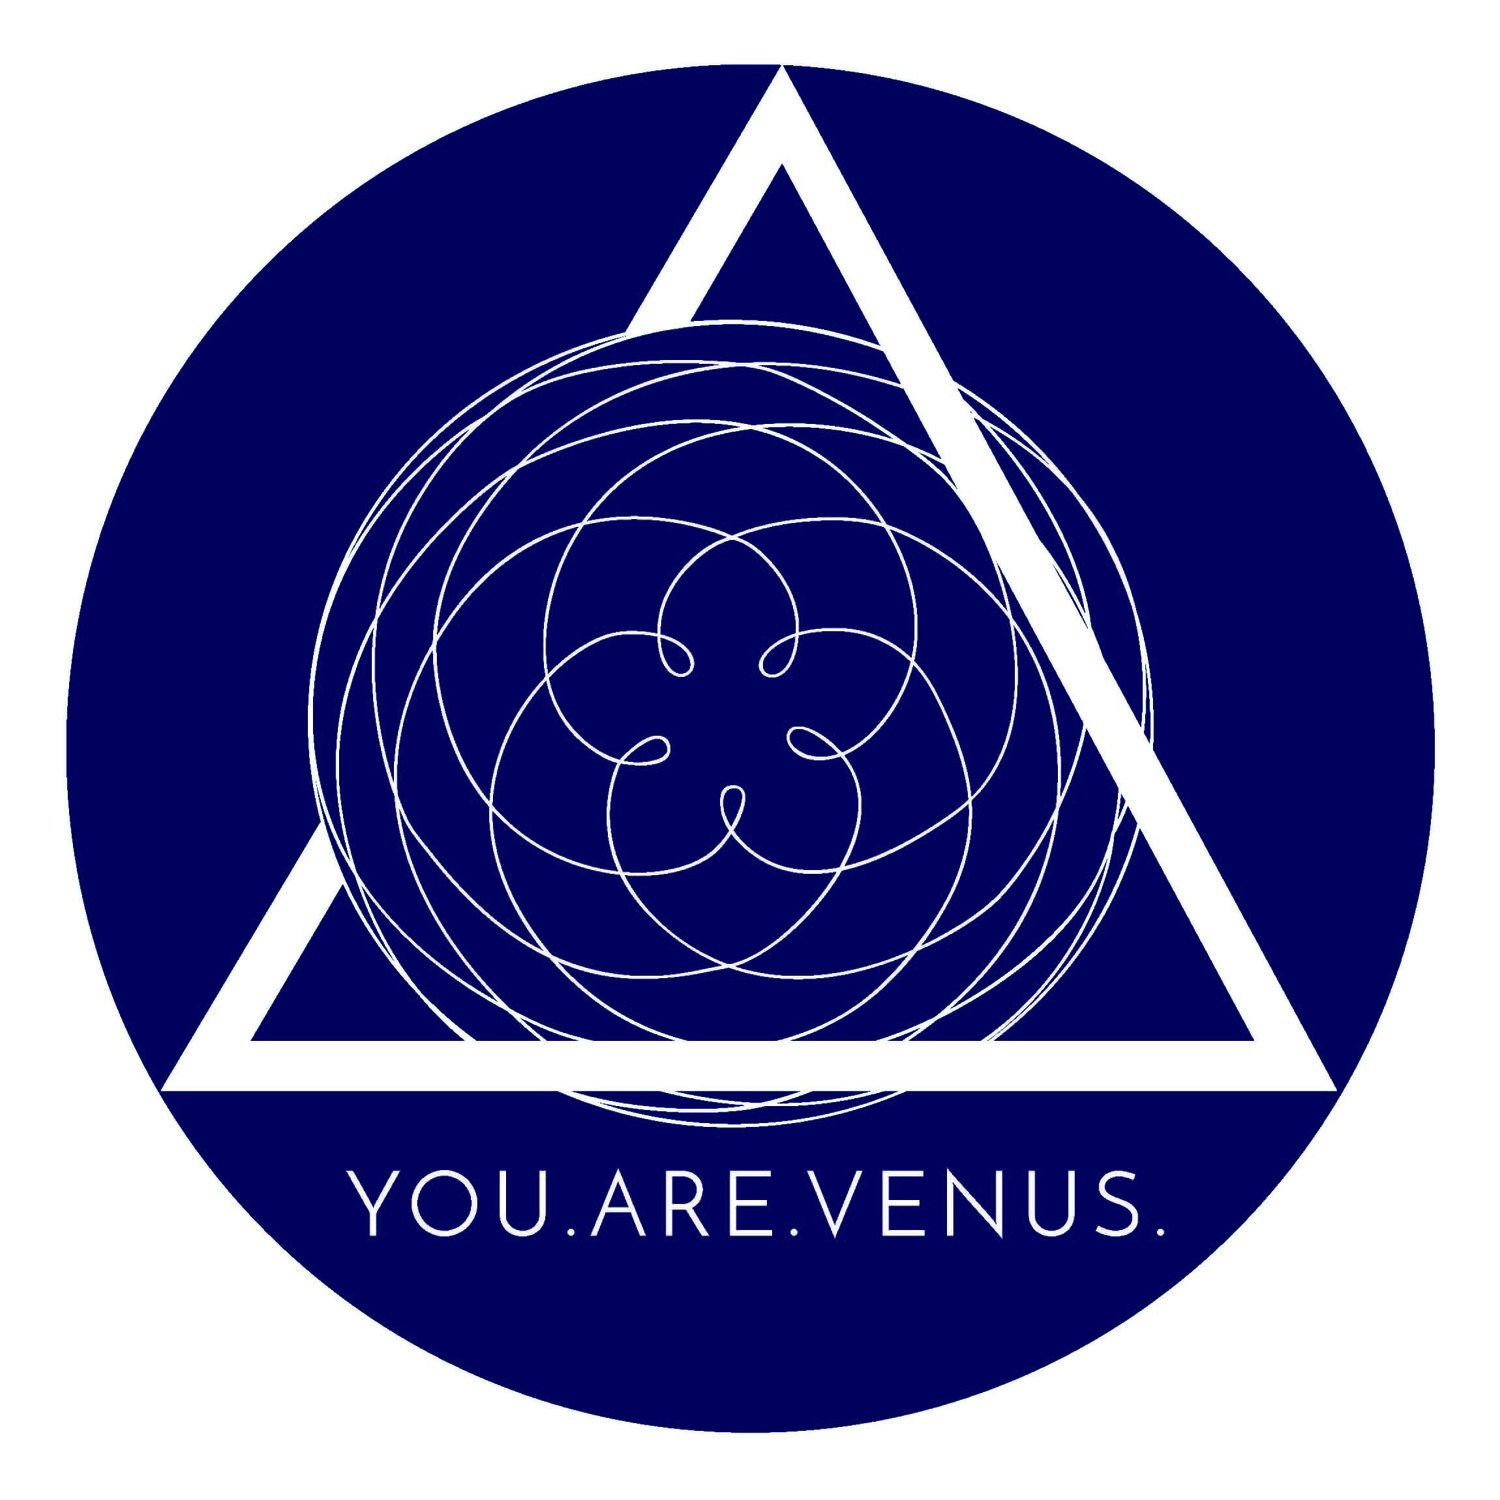 You.Are.Venus.